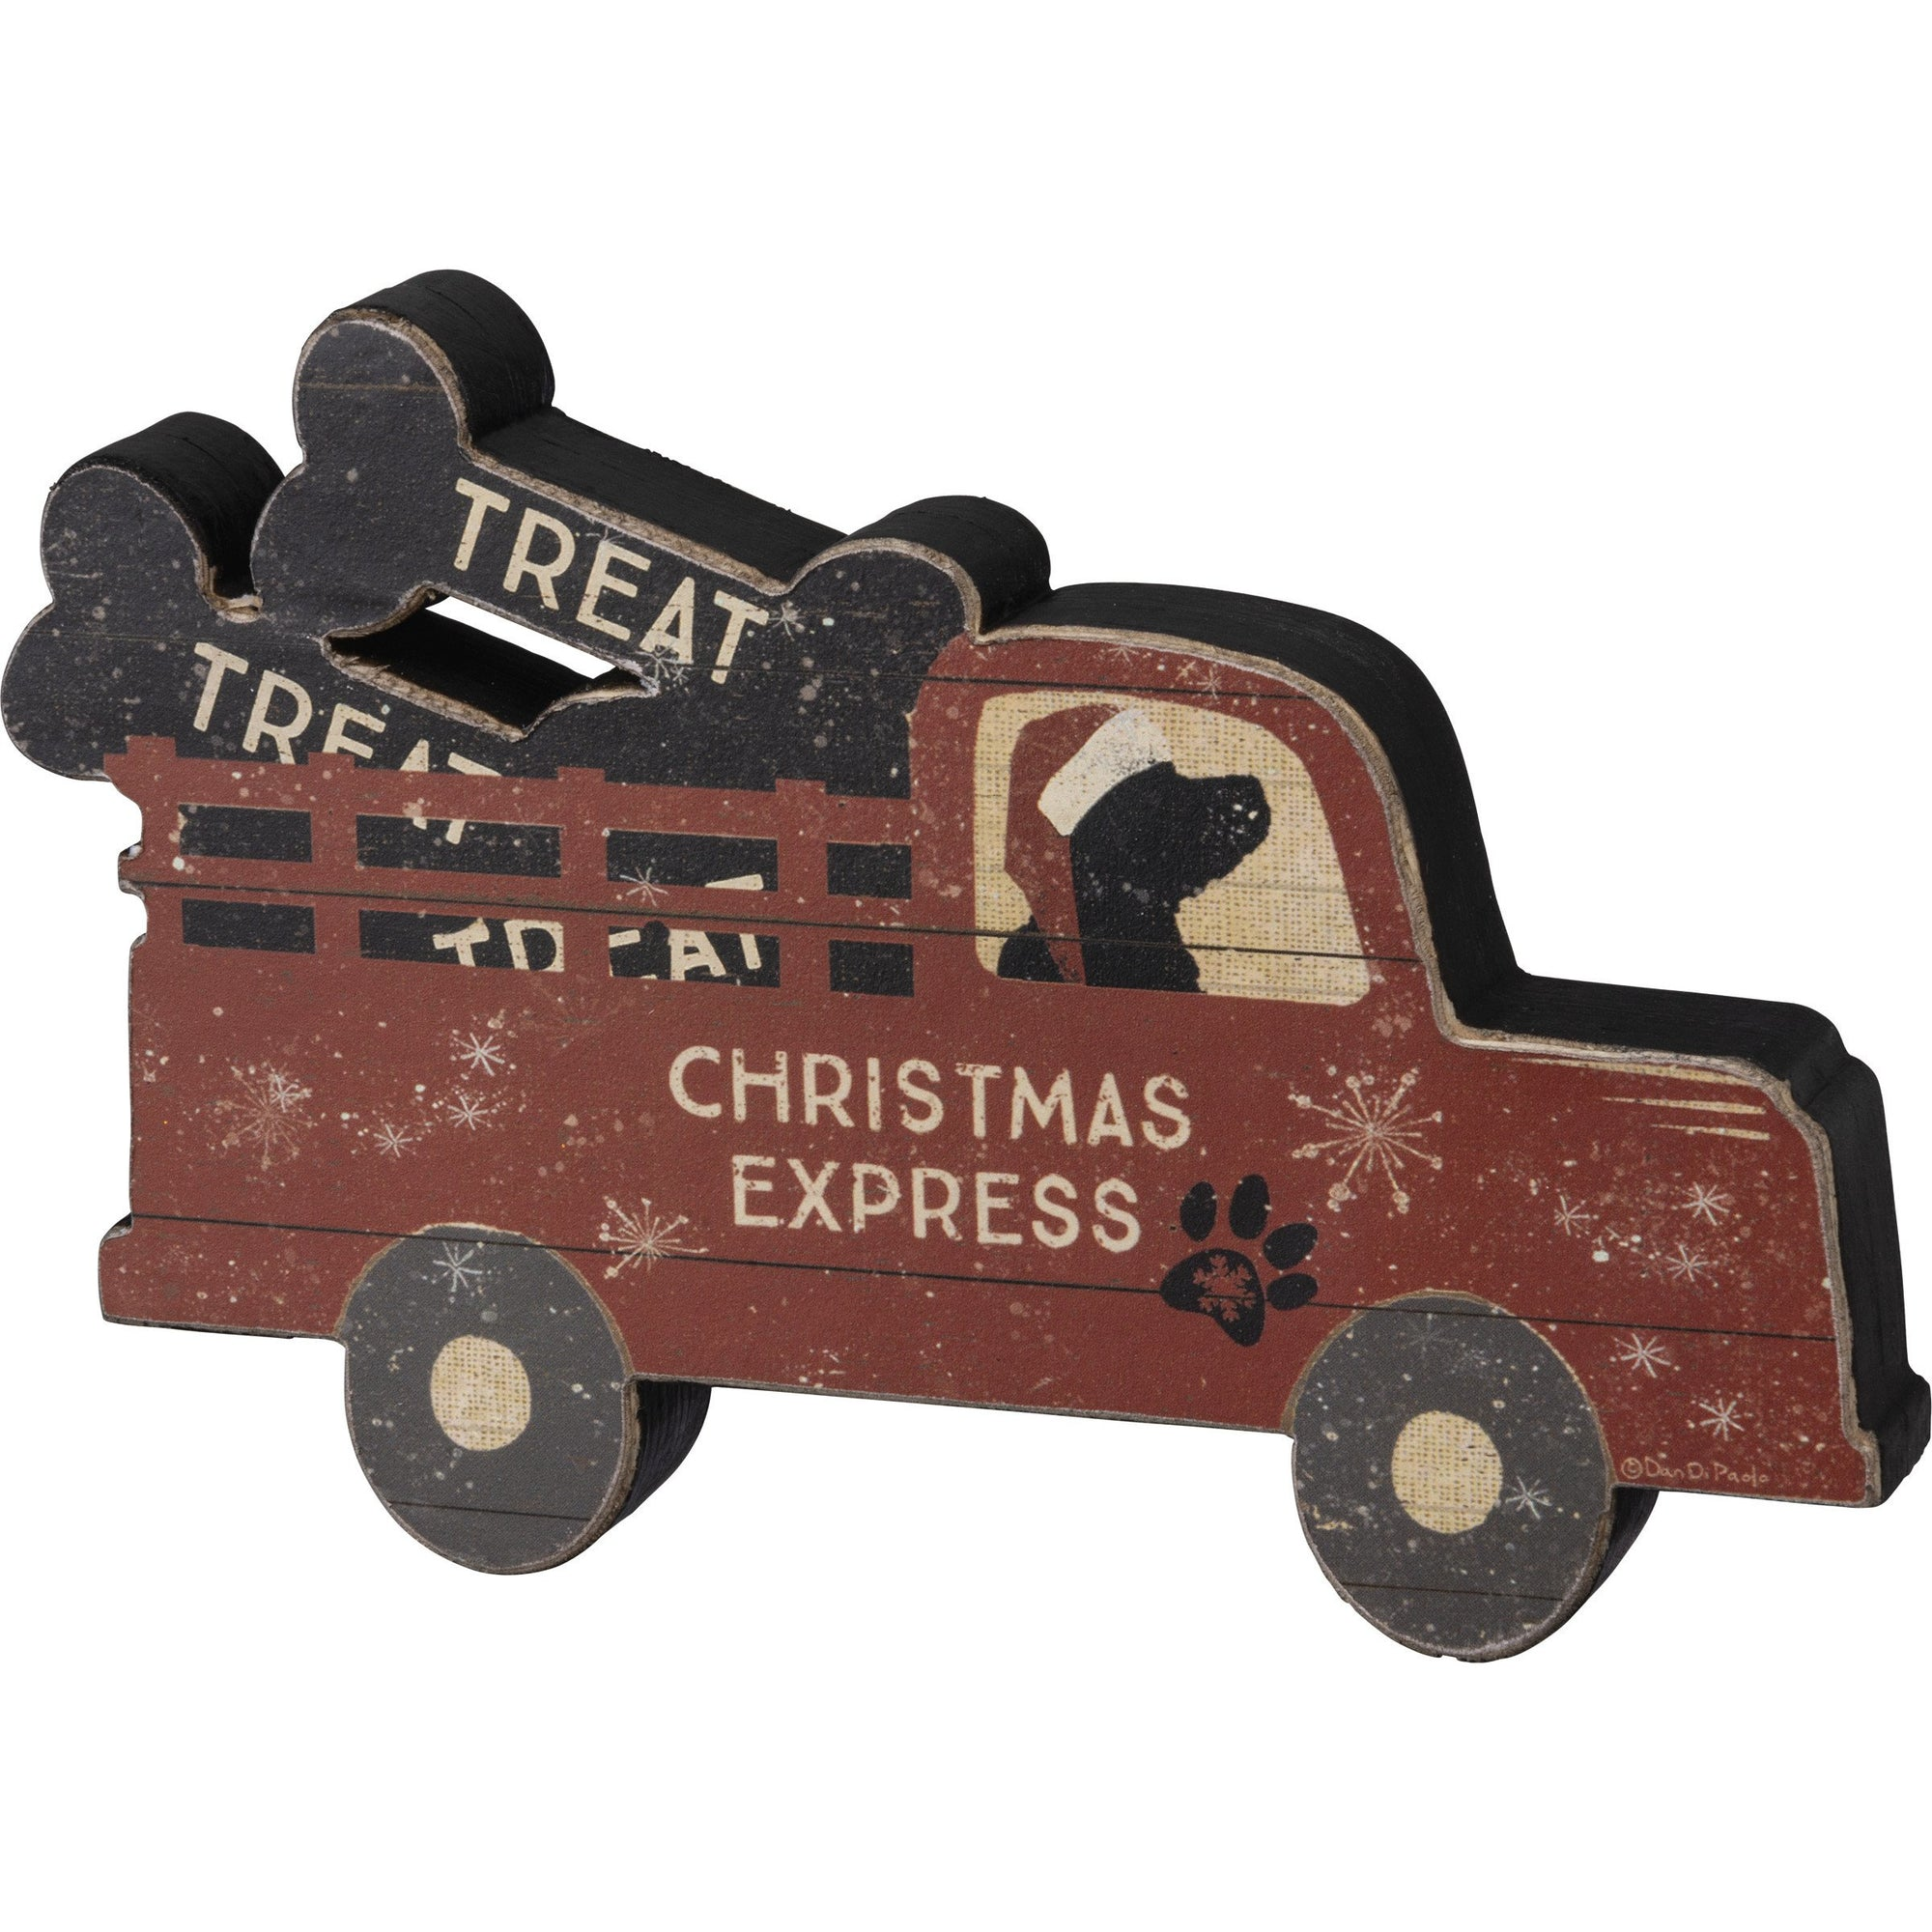 Primitives by Kathy - Chunky Sitter, Christmas Express